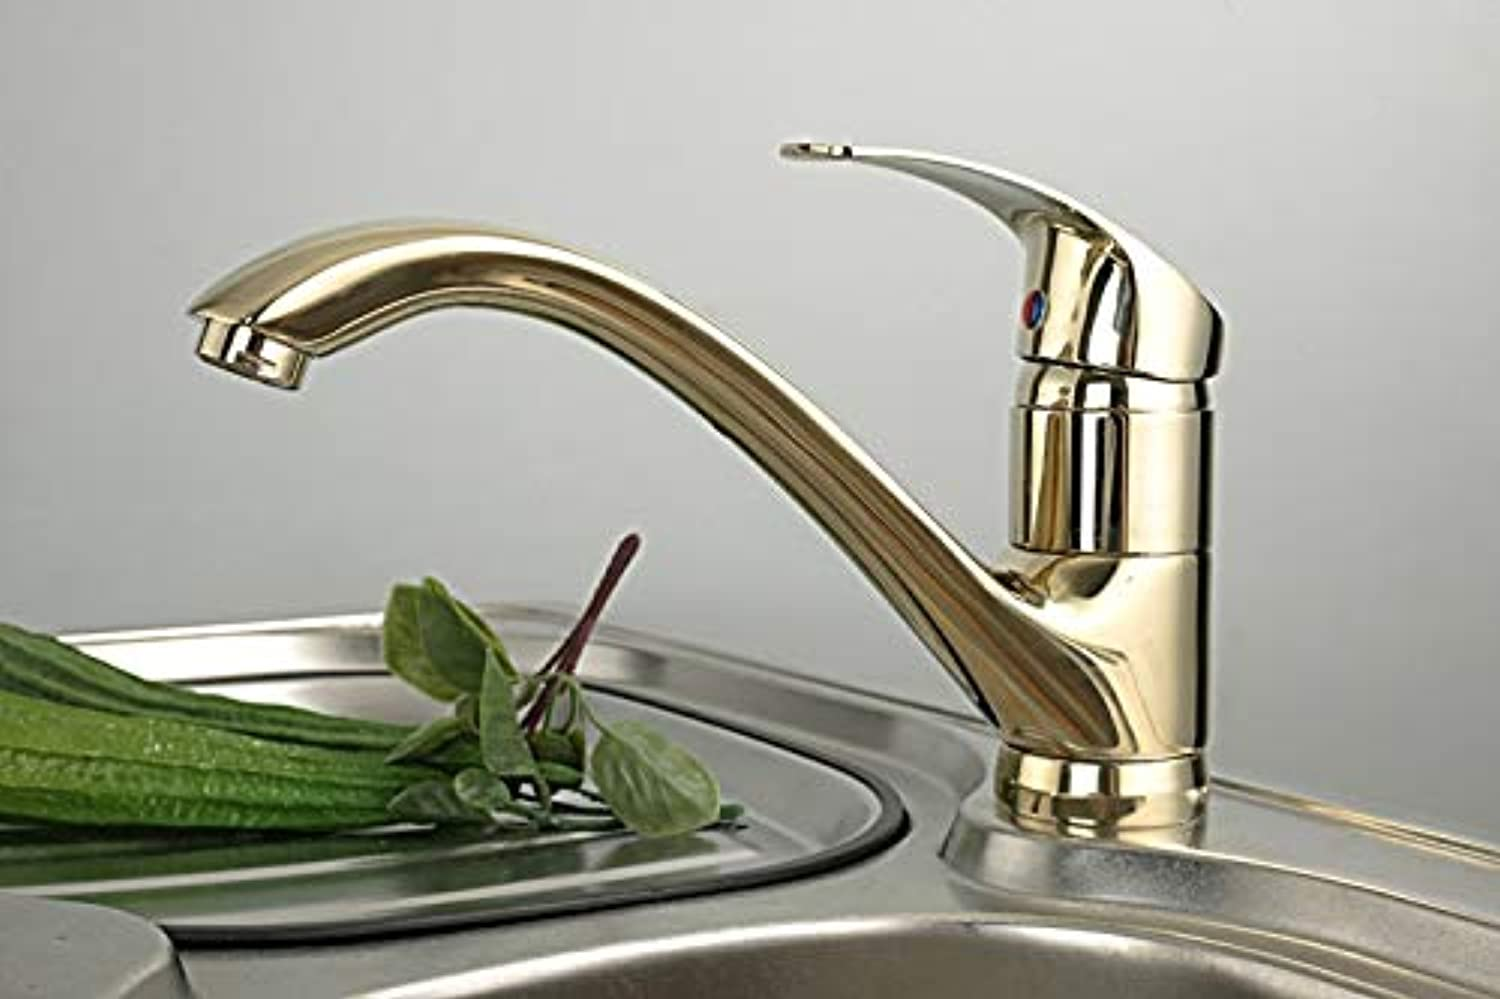 Decorry Luxury gold Polished Vegetables Taps Kitchen Sink Faucet Antique Copper Hot and Cold Water Mixer Kitchen Bathroom Faucets